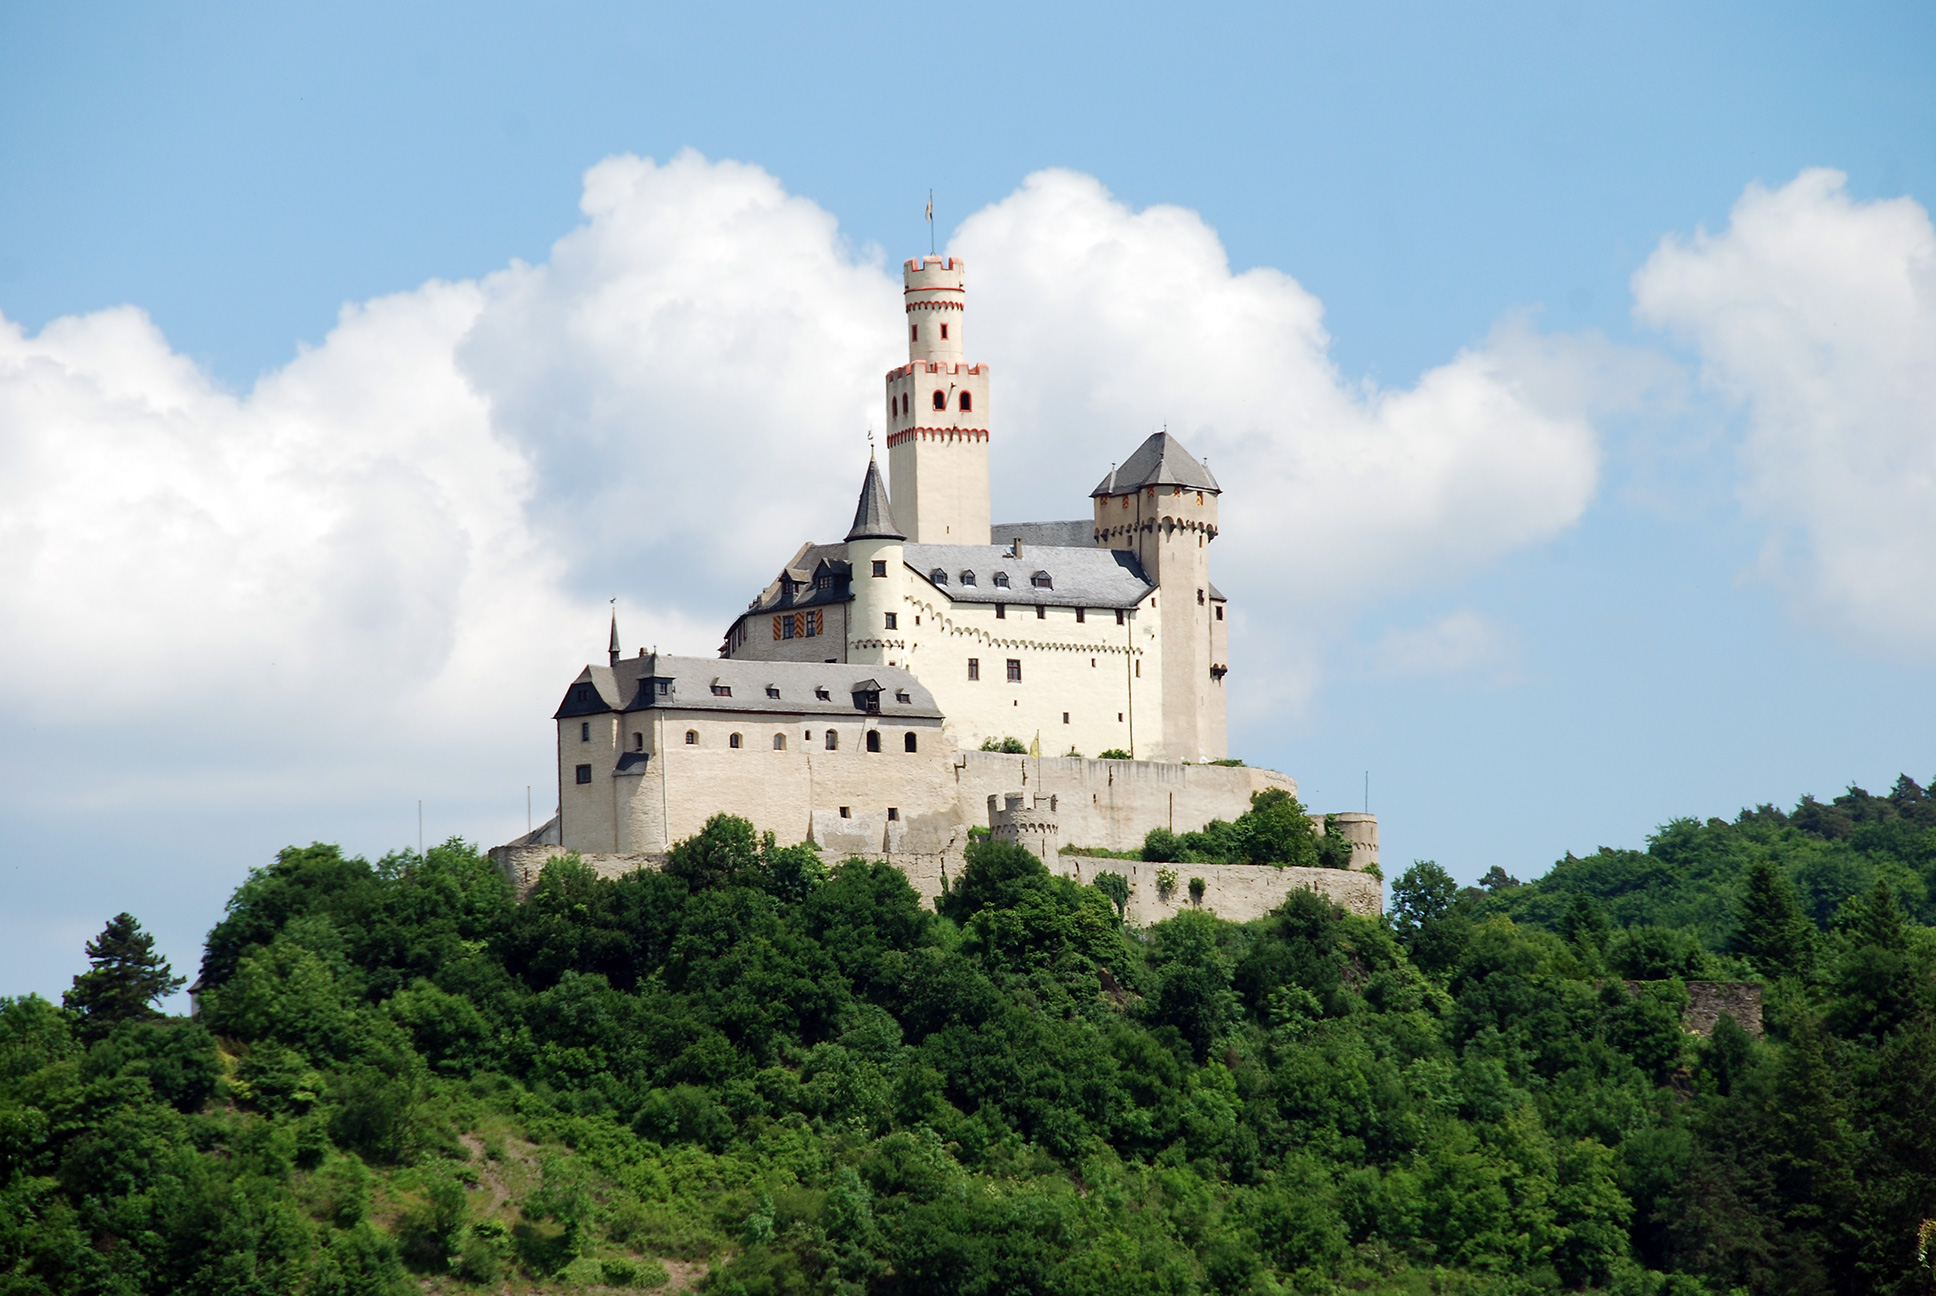 Great Castles Legends Burg Braubach Becomes The Marksburg